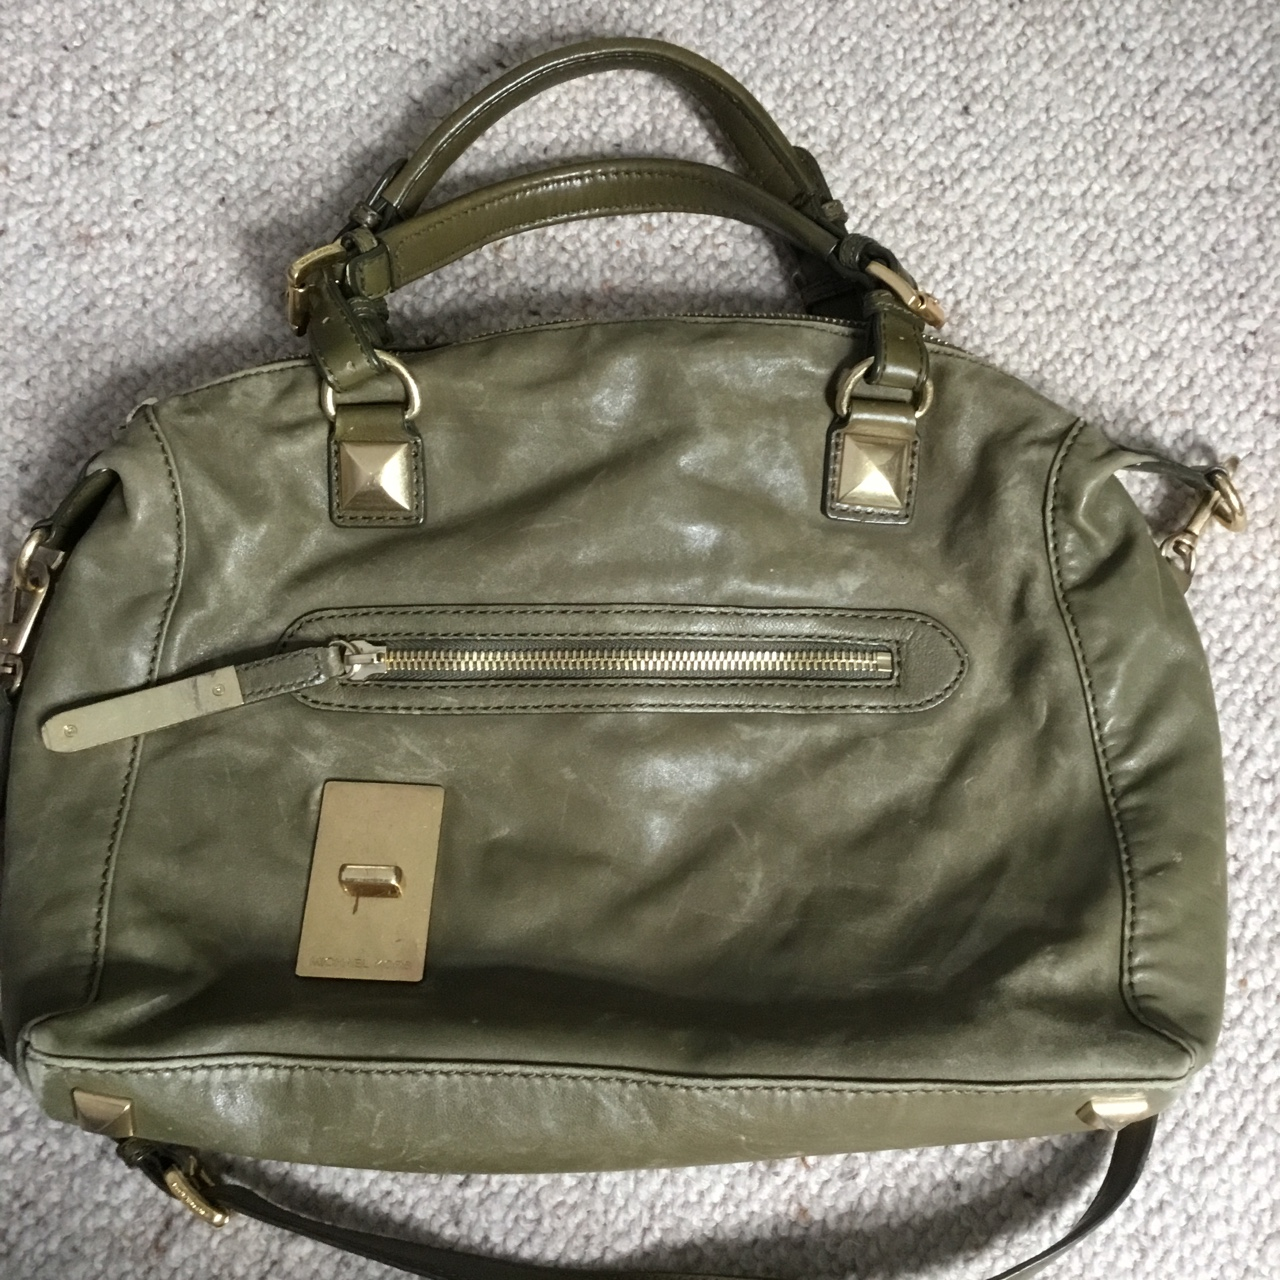 Product Image 1 - Michael Kors bag in olive